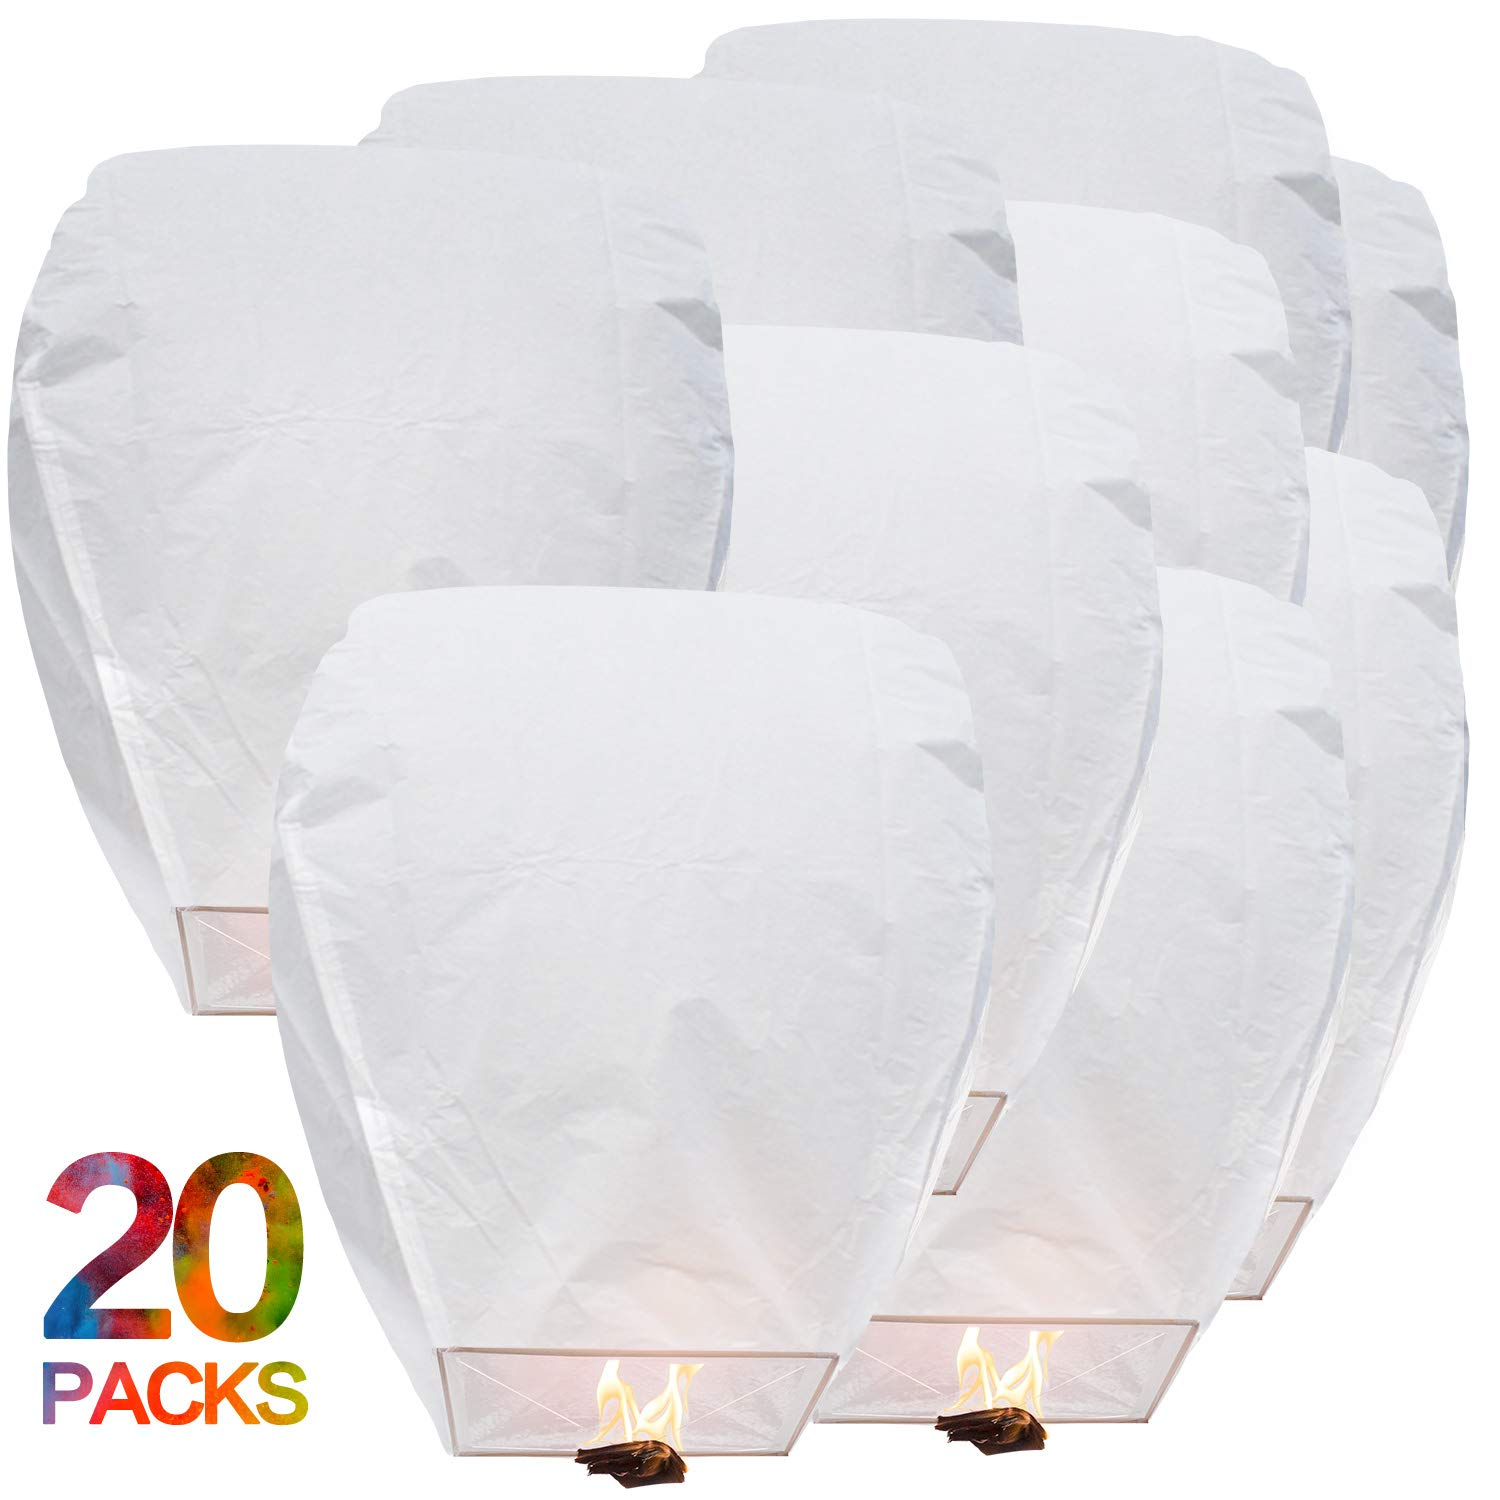 BATTIFE Sky Lanterns Chinese Flying Lanterns Biodegradable Paper Full Assembled 20 Pack White for Party Holiday Memorial Day to Release in Sky by BATTIFE